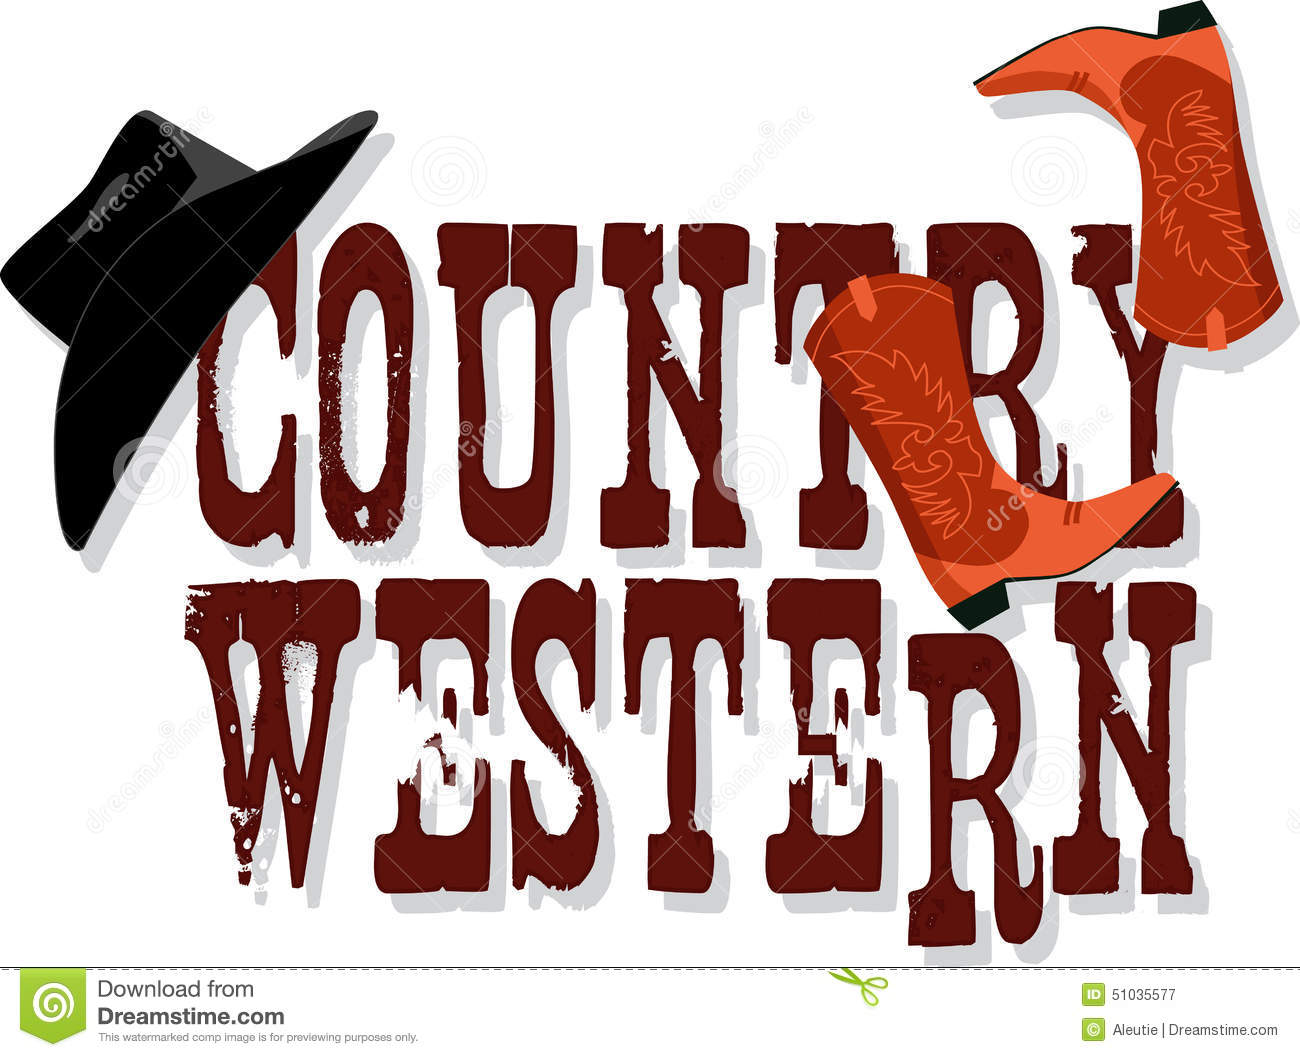 Western clipart hoedown Clipart 40 Stock collection Illustrations